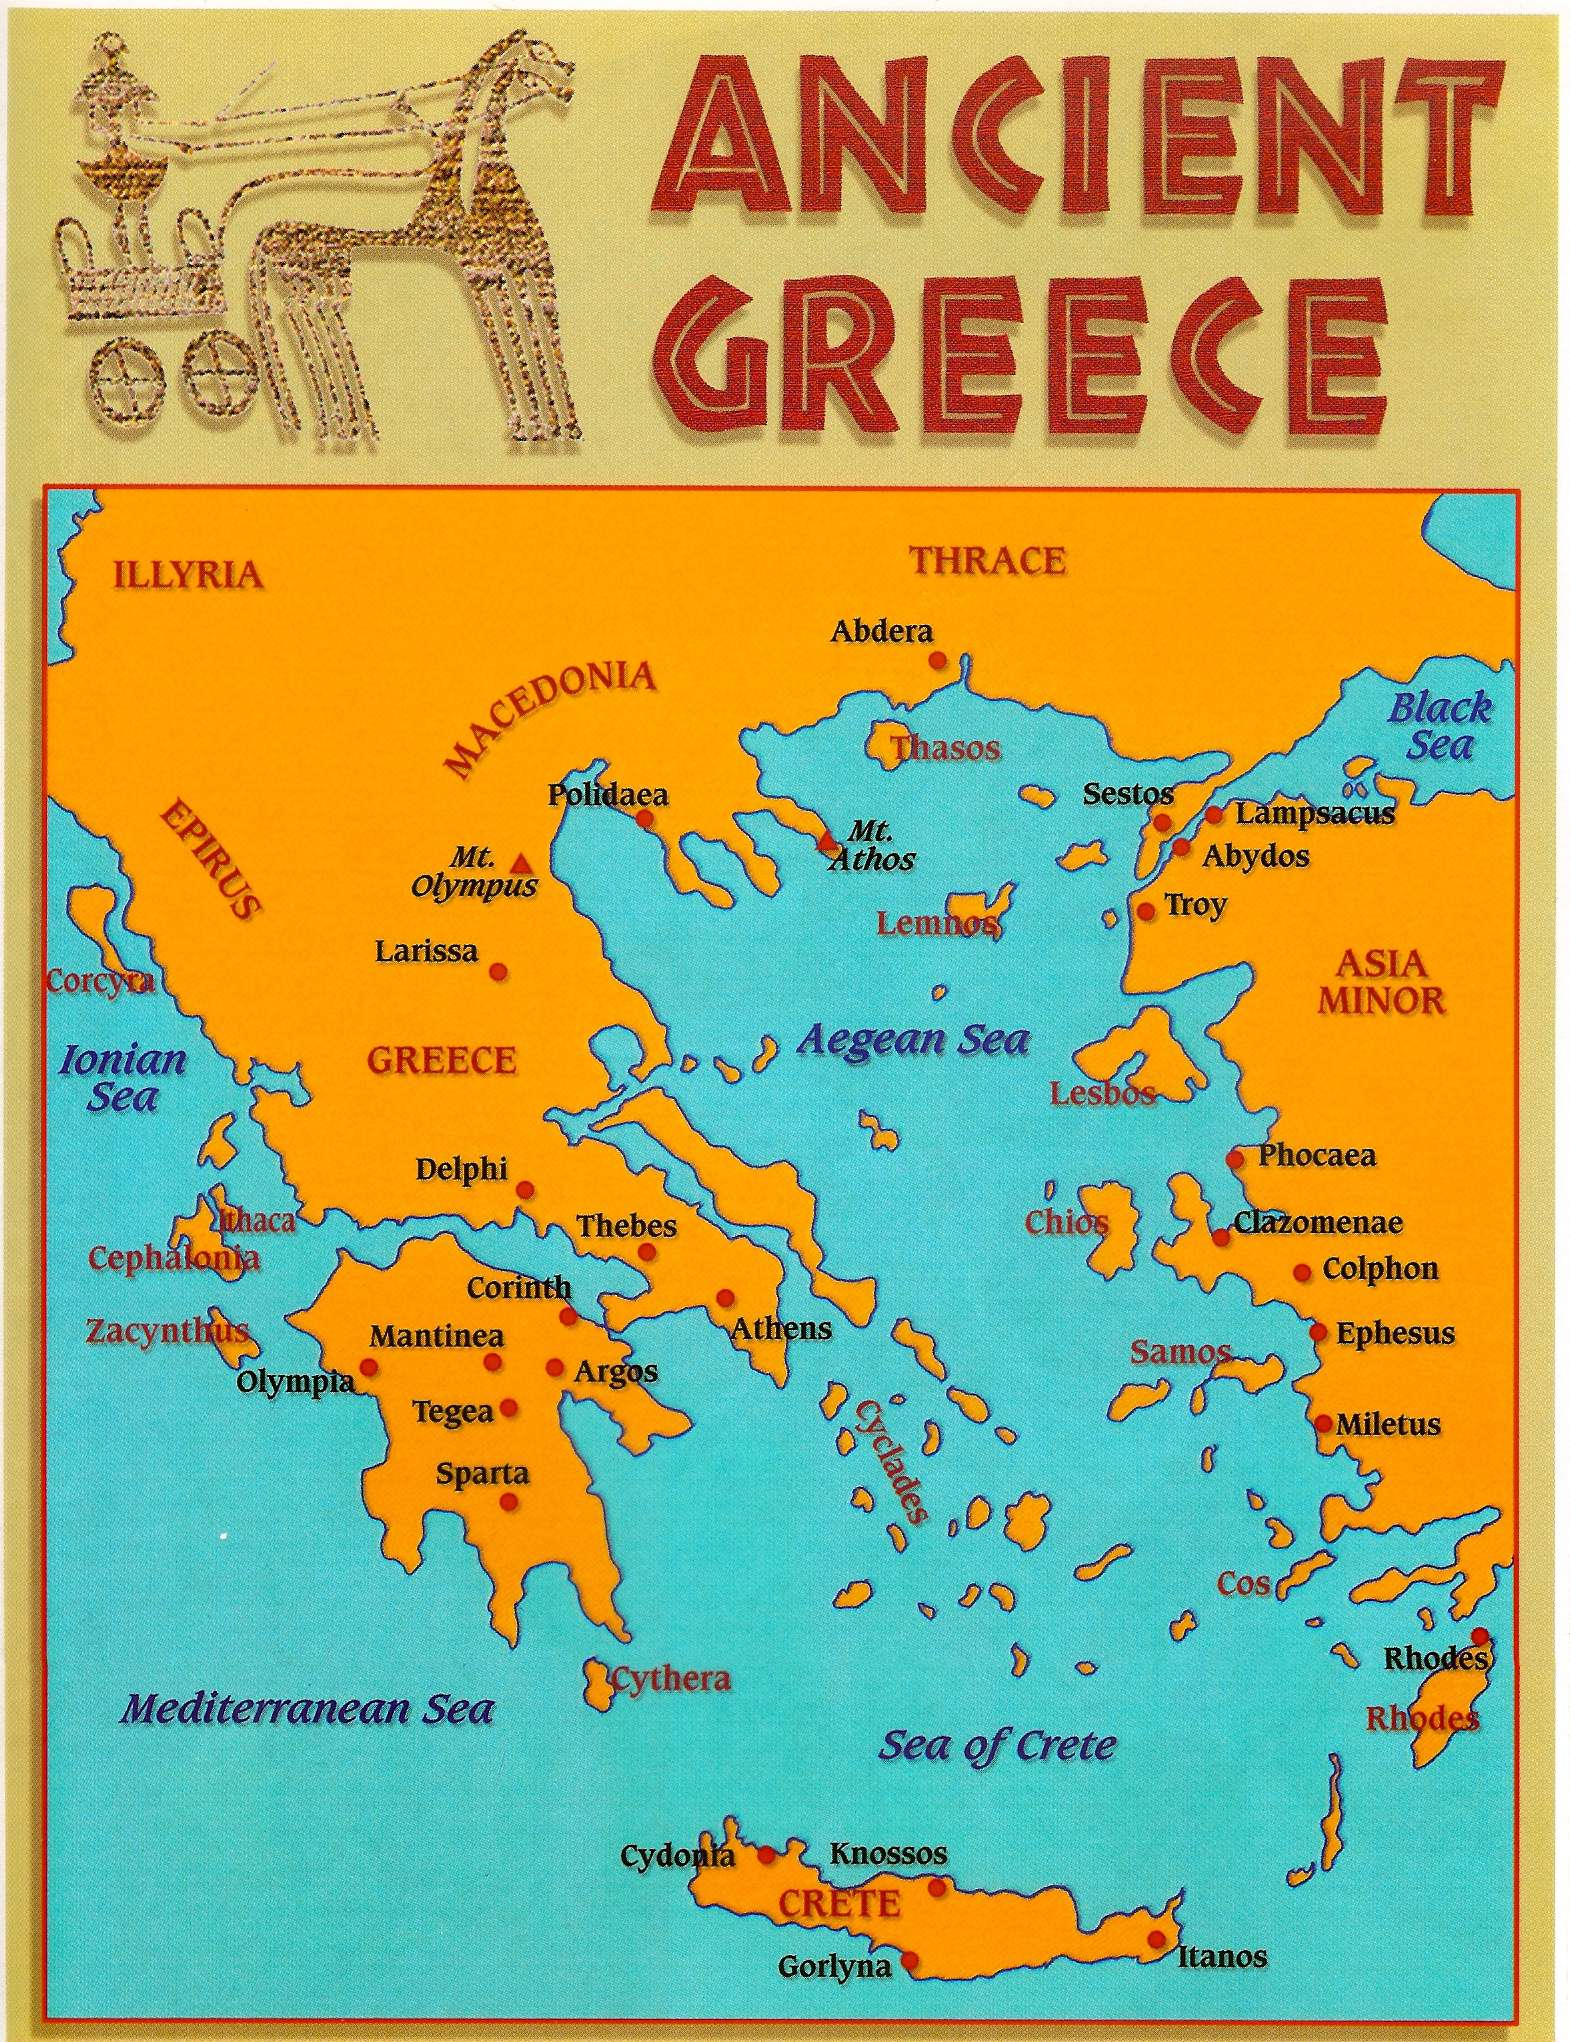 It's just a picture of Old Fashioned Ancient Greece Map Labeled